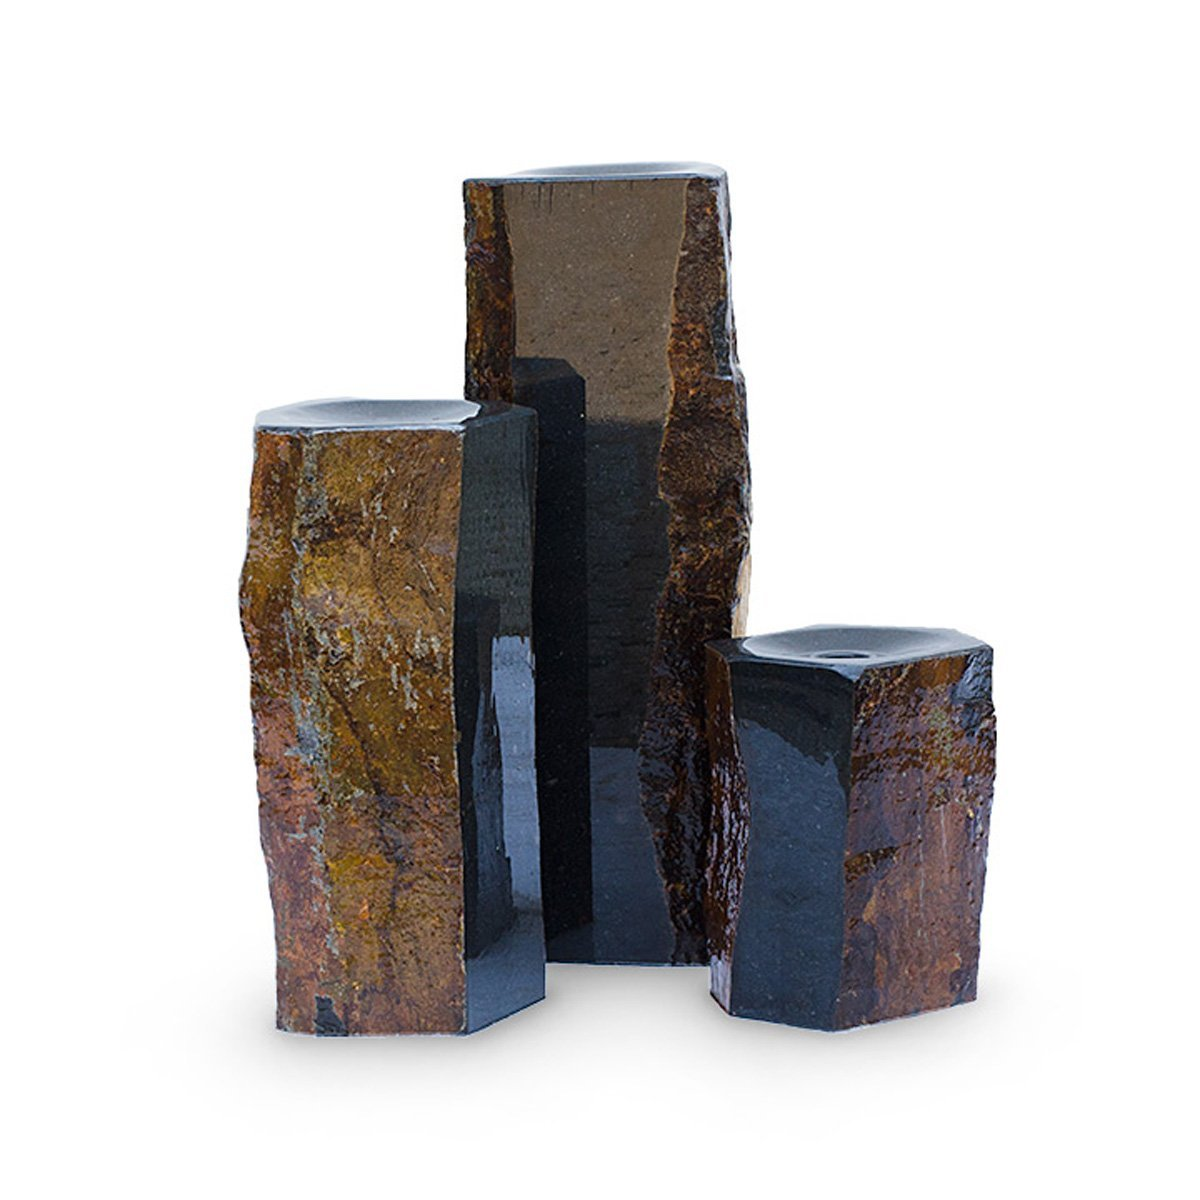 Aquascape Double Textured Basalt Cored Water Fountain Columns, Set of 3, for Landscape and Garden | 98548 by Aquascape